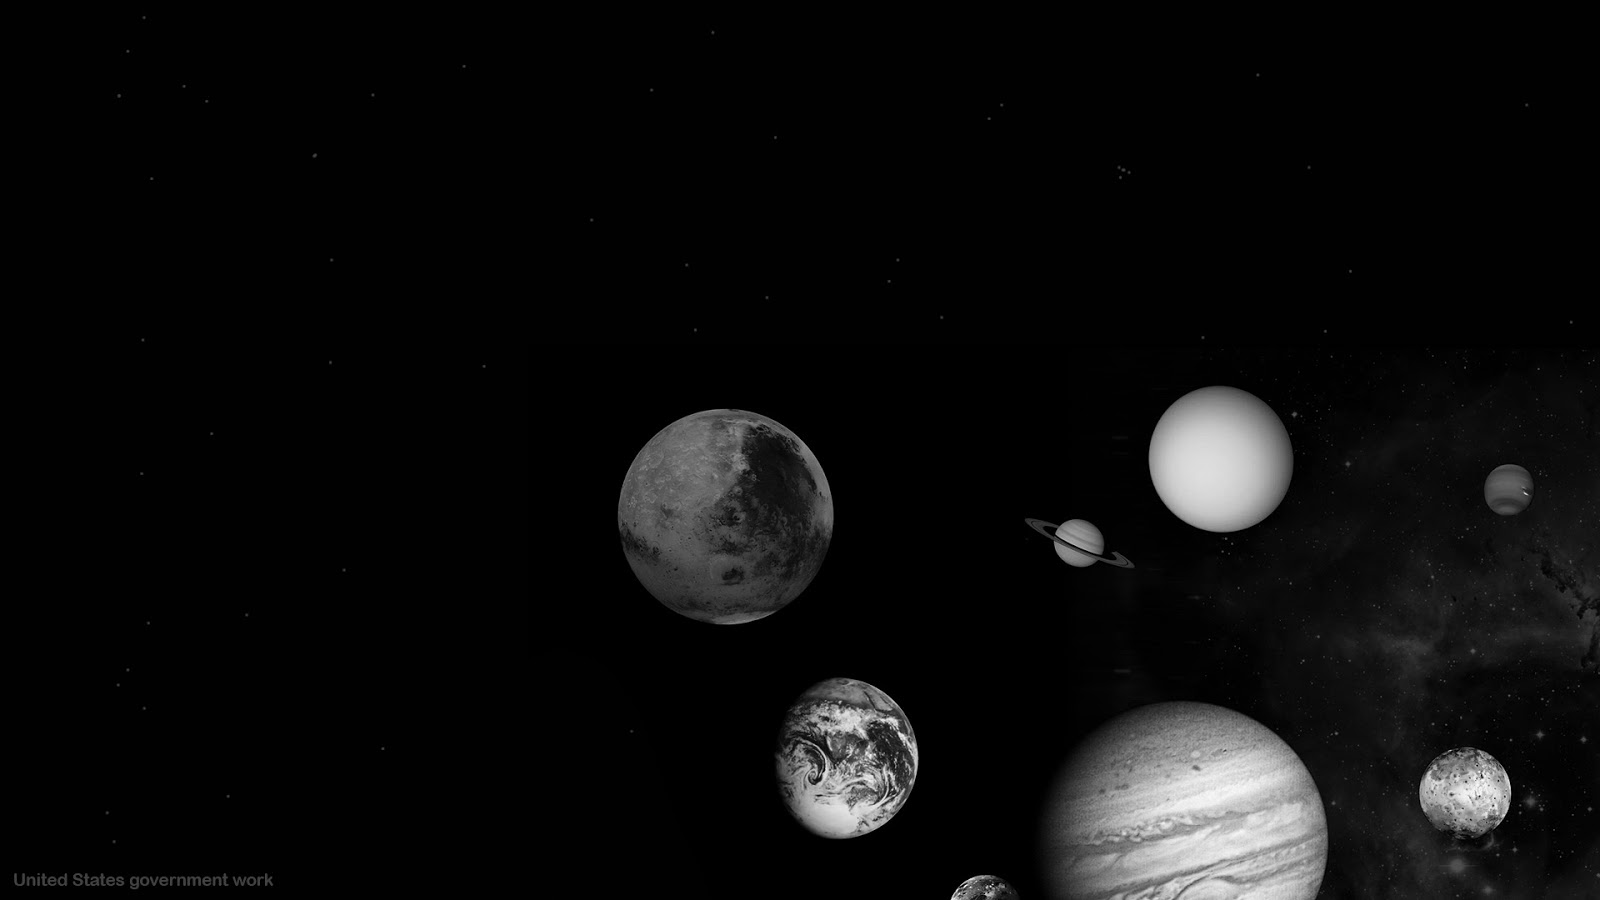 Black and white space backgrounds showing our solar system planets